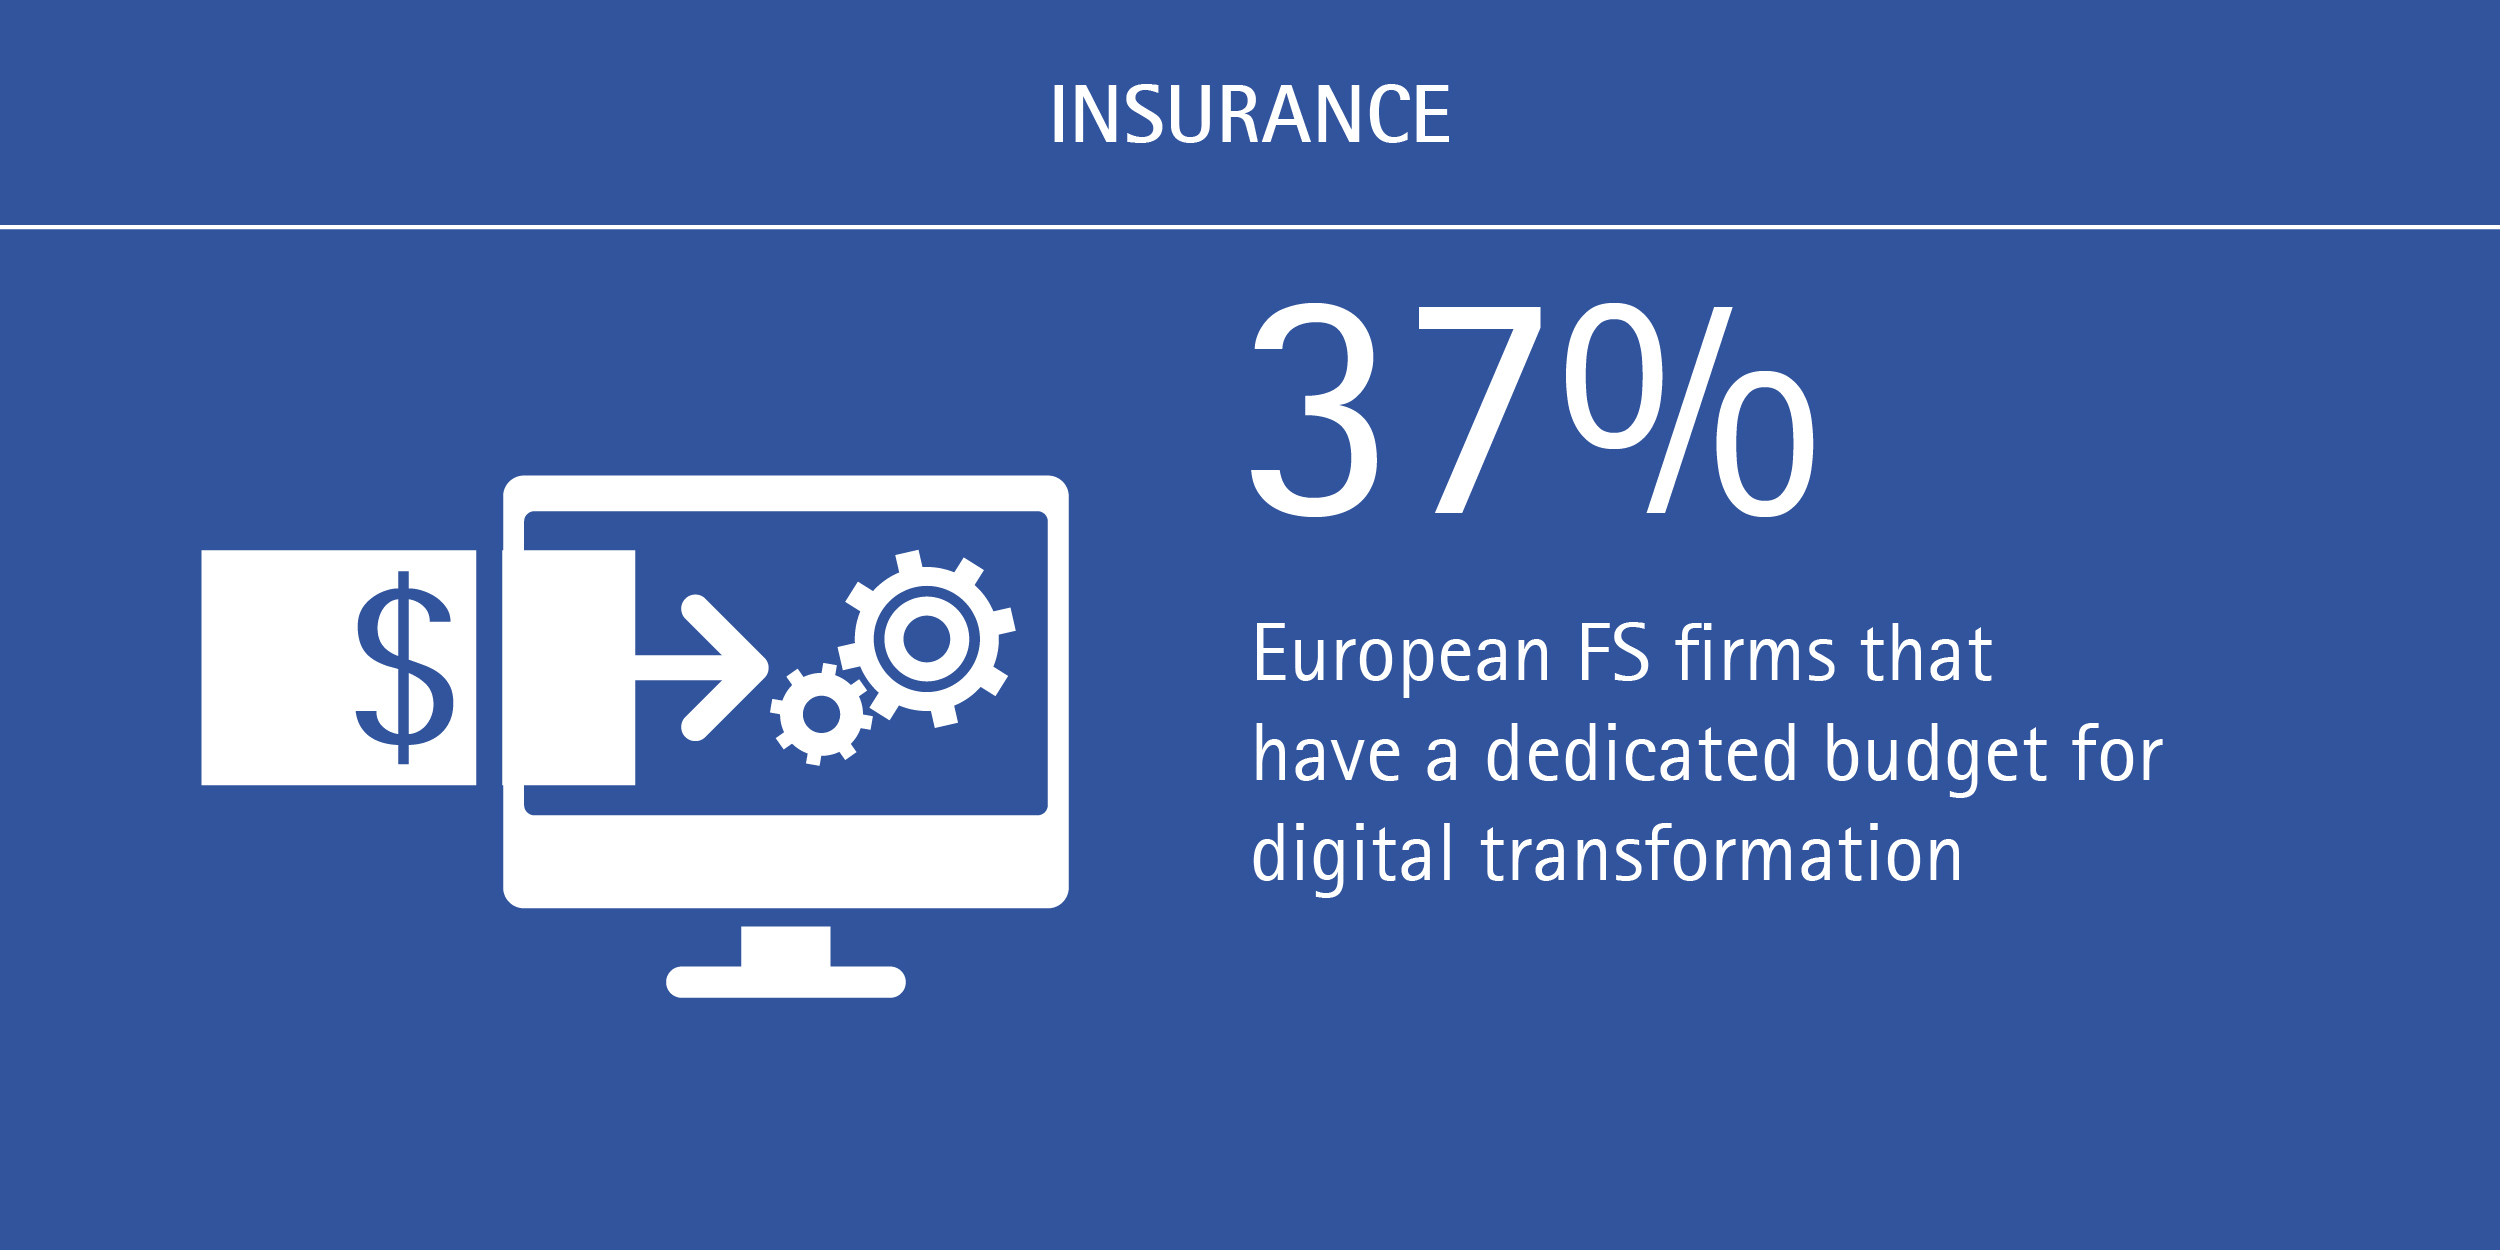 European insurers and banks have digital vision and strategy, but need to act_Accenture INS (FIgure 4)